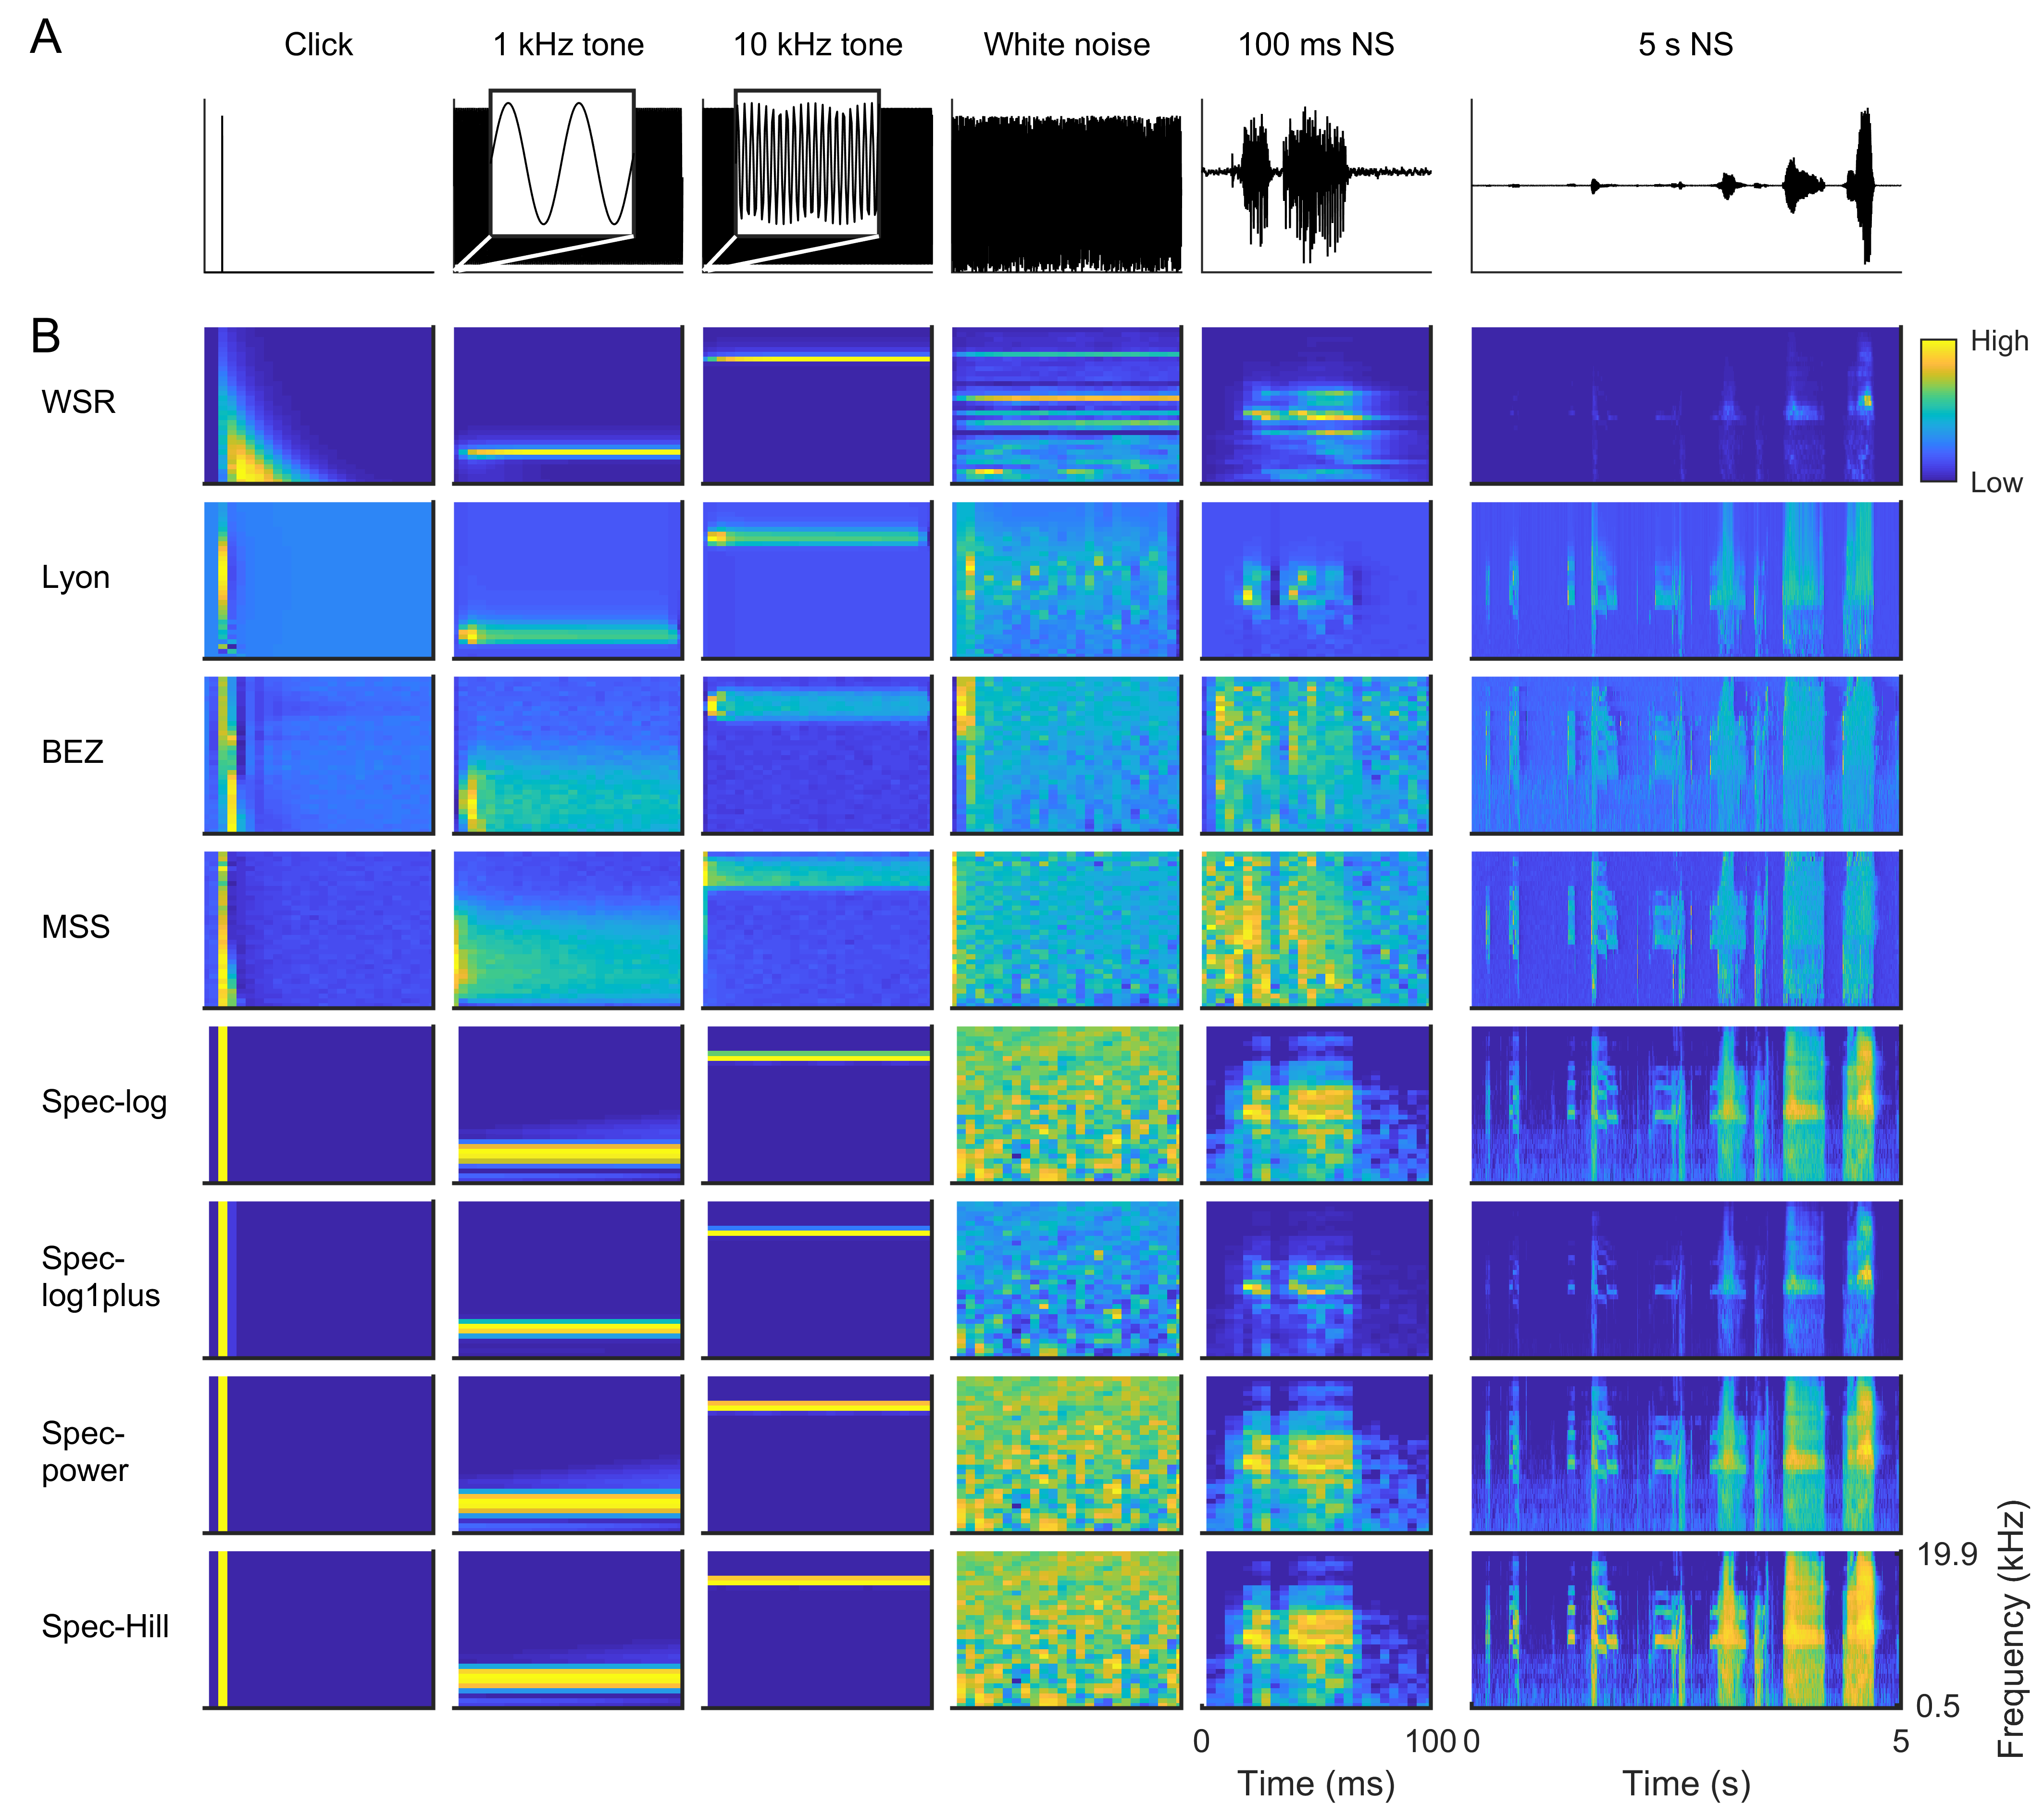 Cochlegram showing frequencies ranging from low to high produced in all cochlear models used when exposed to the following sounds: a click, different kHz of pure tones, white noise, natural sounds and human speech.